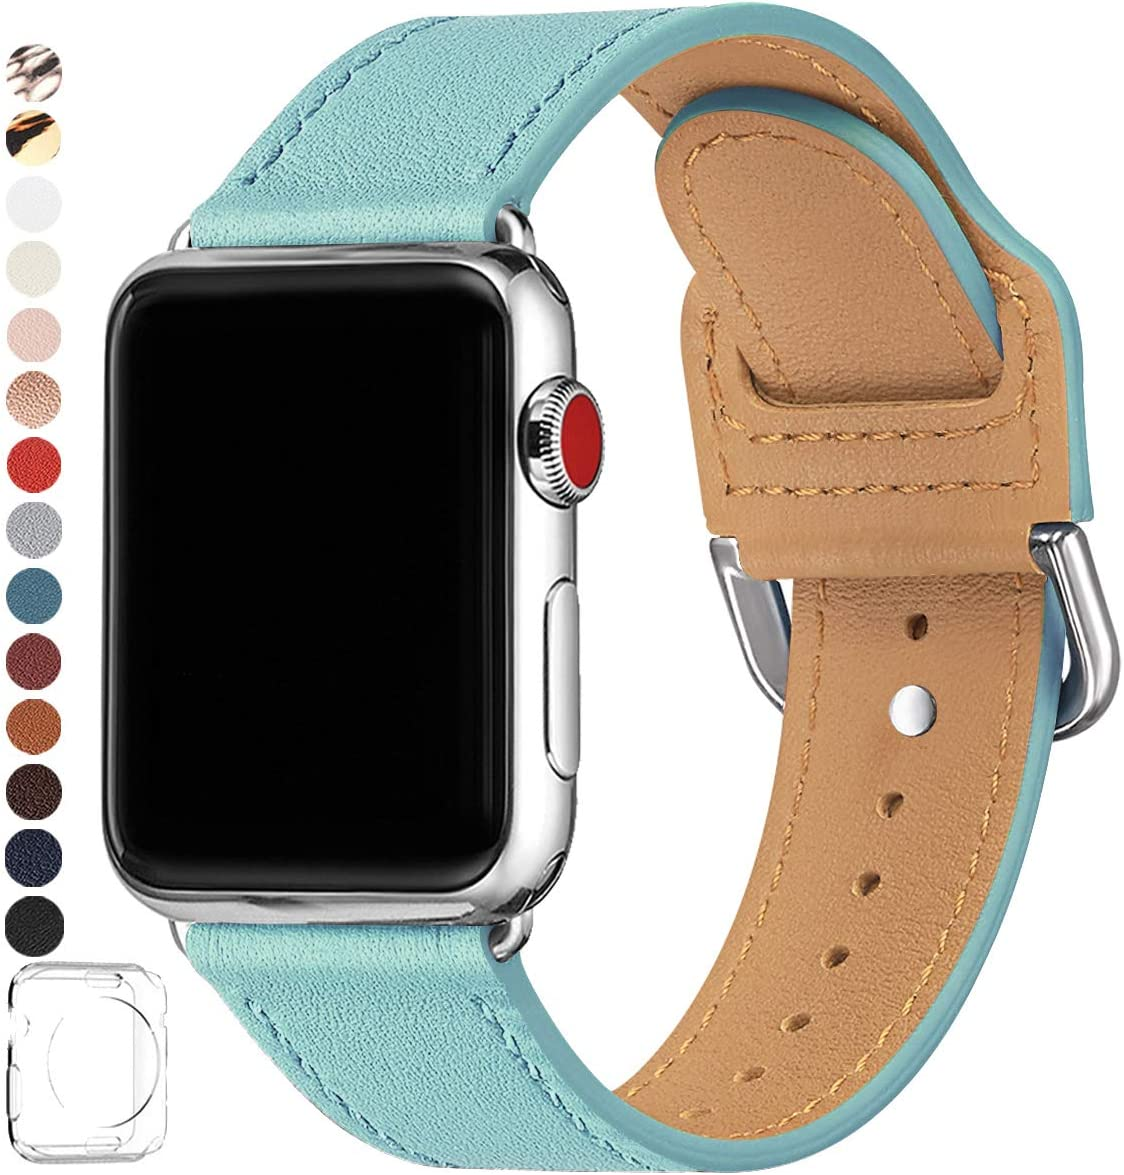 POWER PRIMACY Bands Compatible with Apple Watch Band 38mm 40mm 42mm 44mm, Top Grain Leather Smart Watch Band Compatible for Men Women iWatch Series 5/4/3/2/1 (Tiffany Blue/Silver, 38mm 40mm)